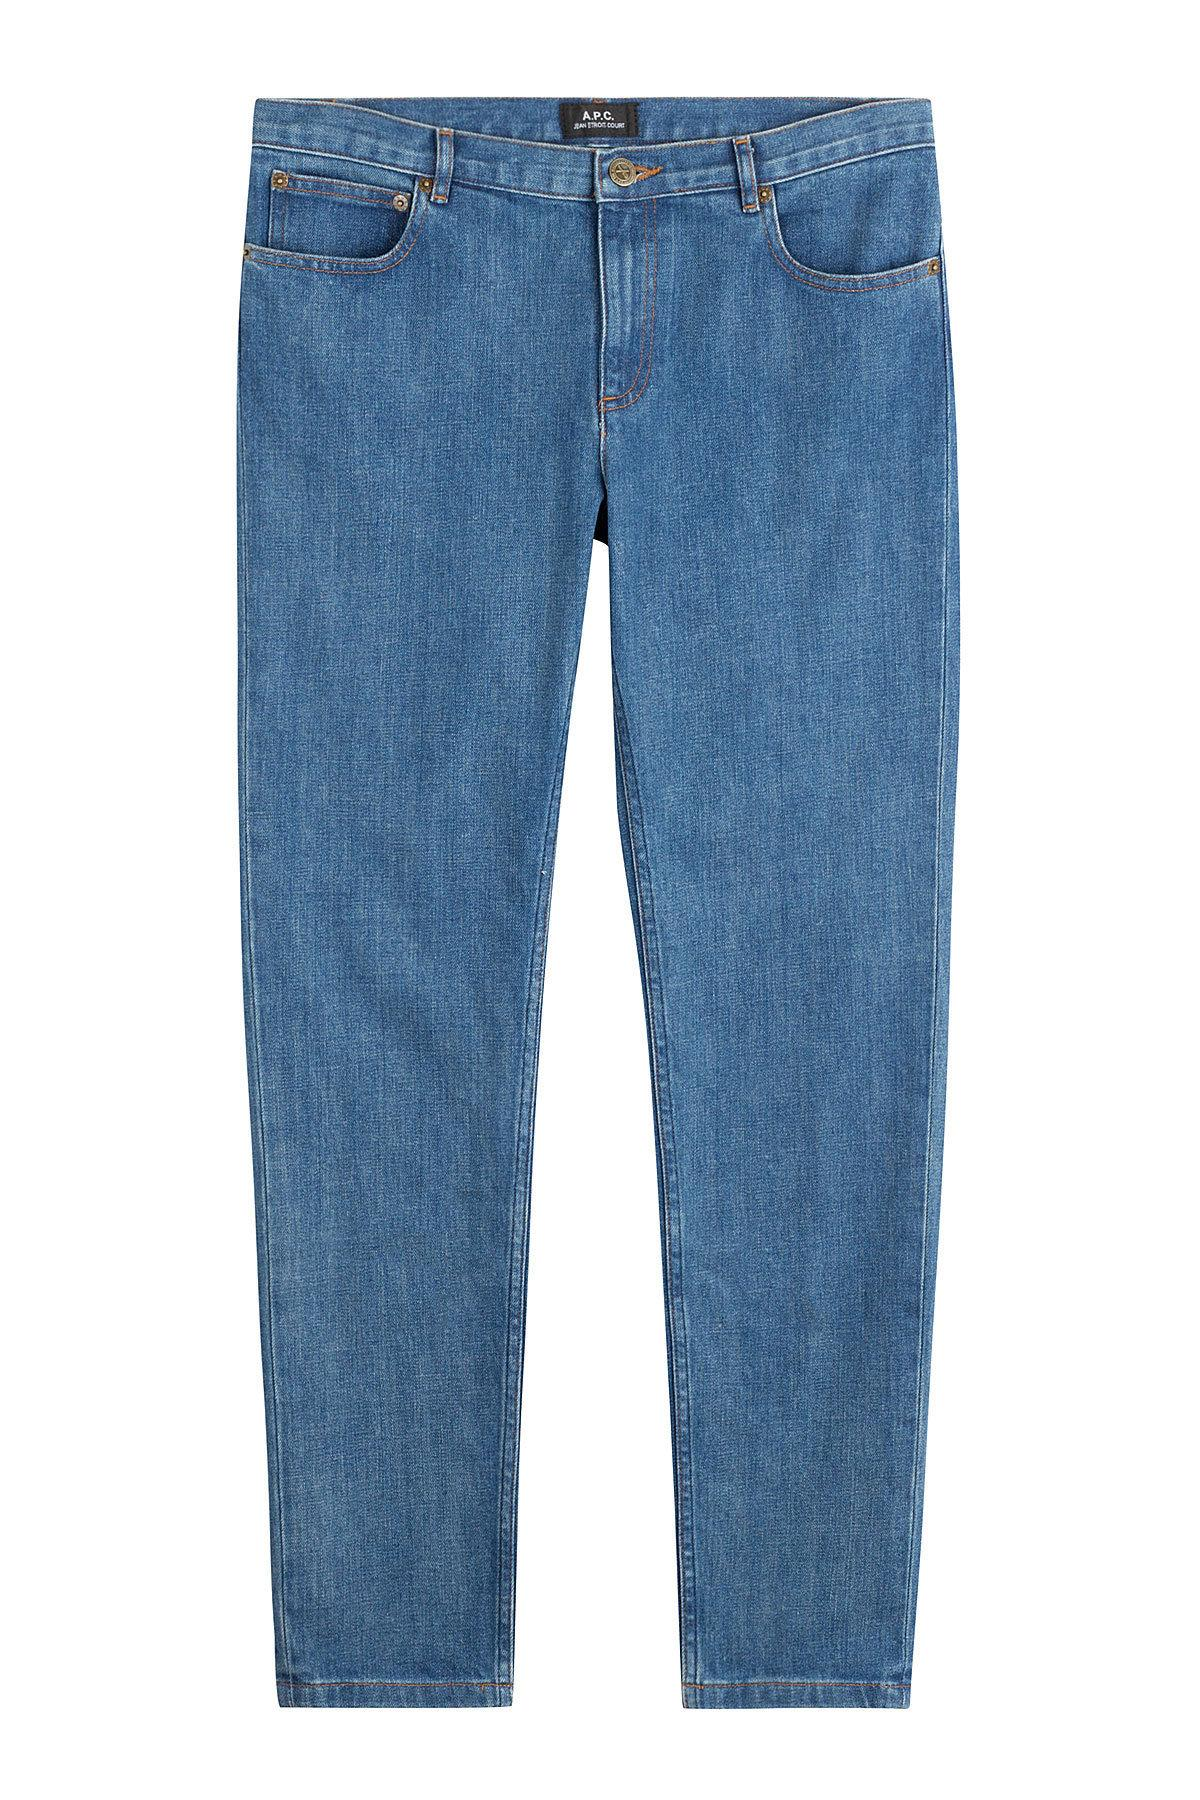 Lyst - A.P.C. Ankle Length Jeans in Blue for Men